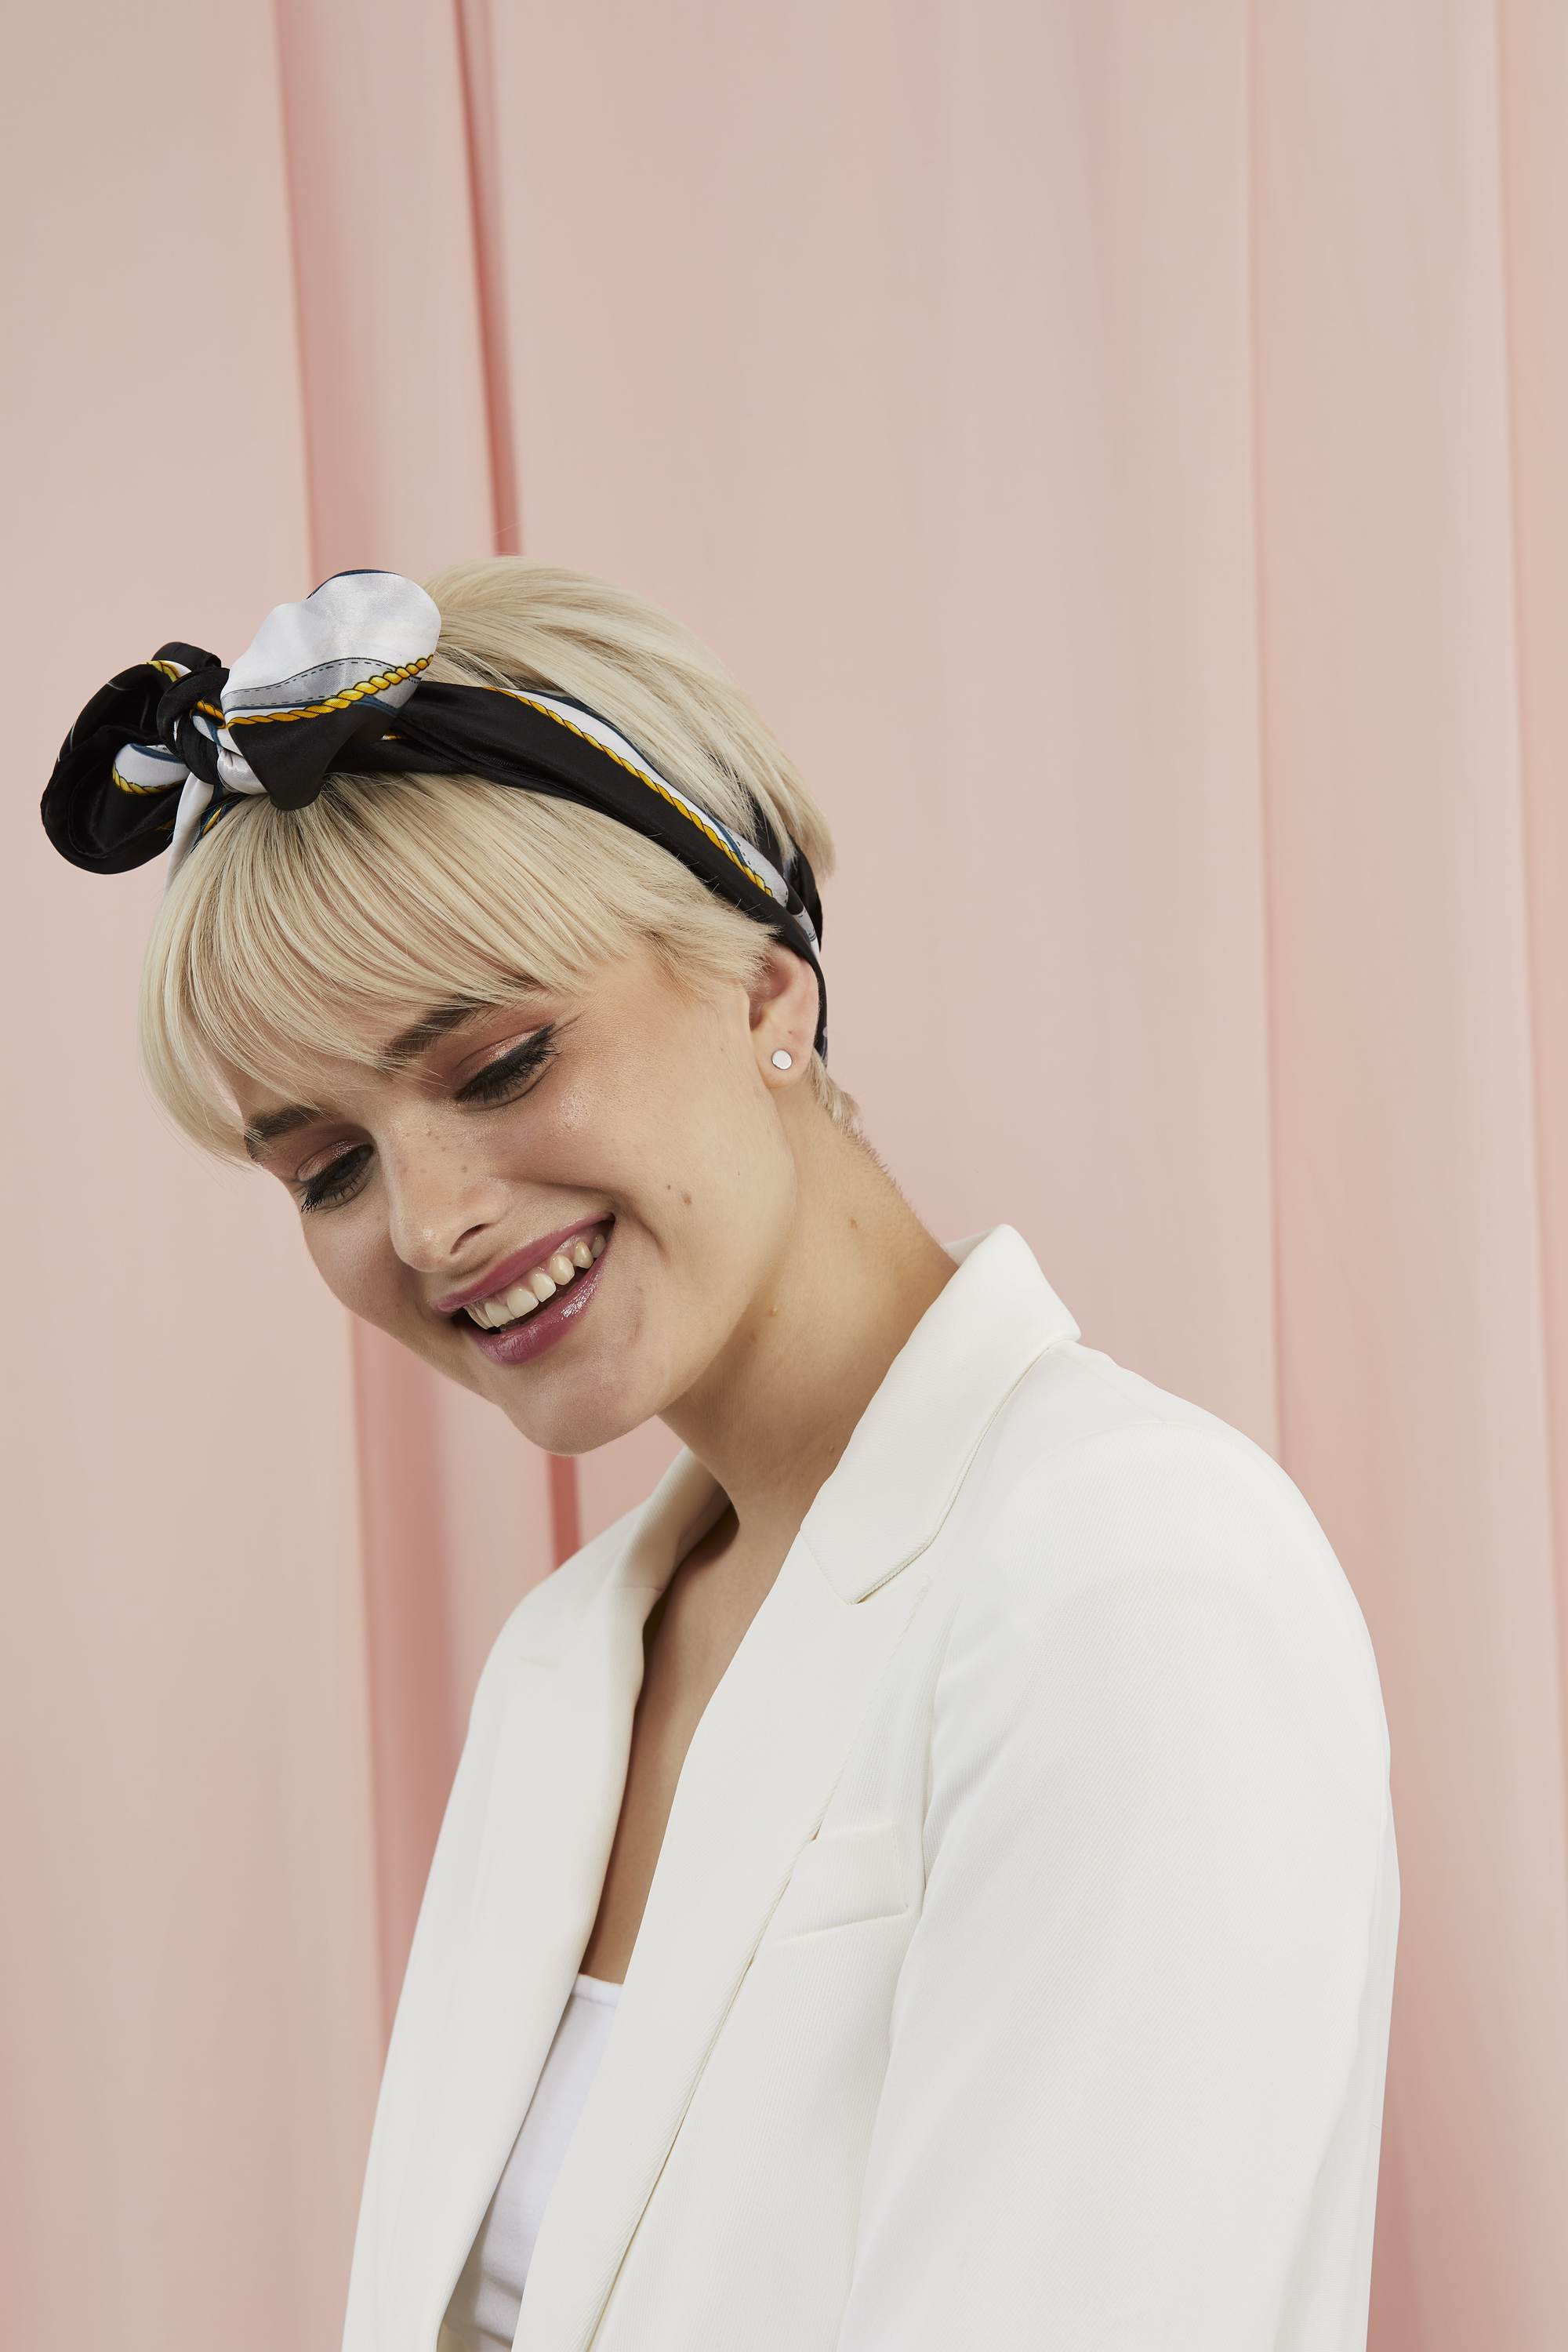 Woman with a platinum blonde pixie cut with a scarf tied around